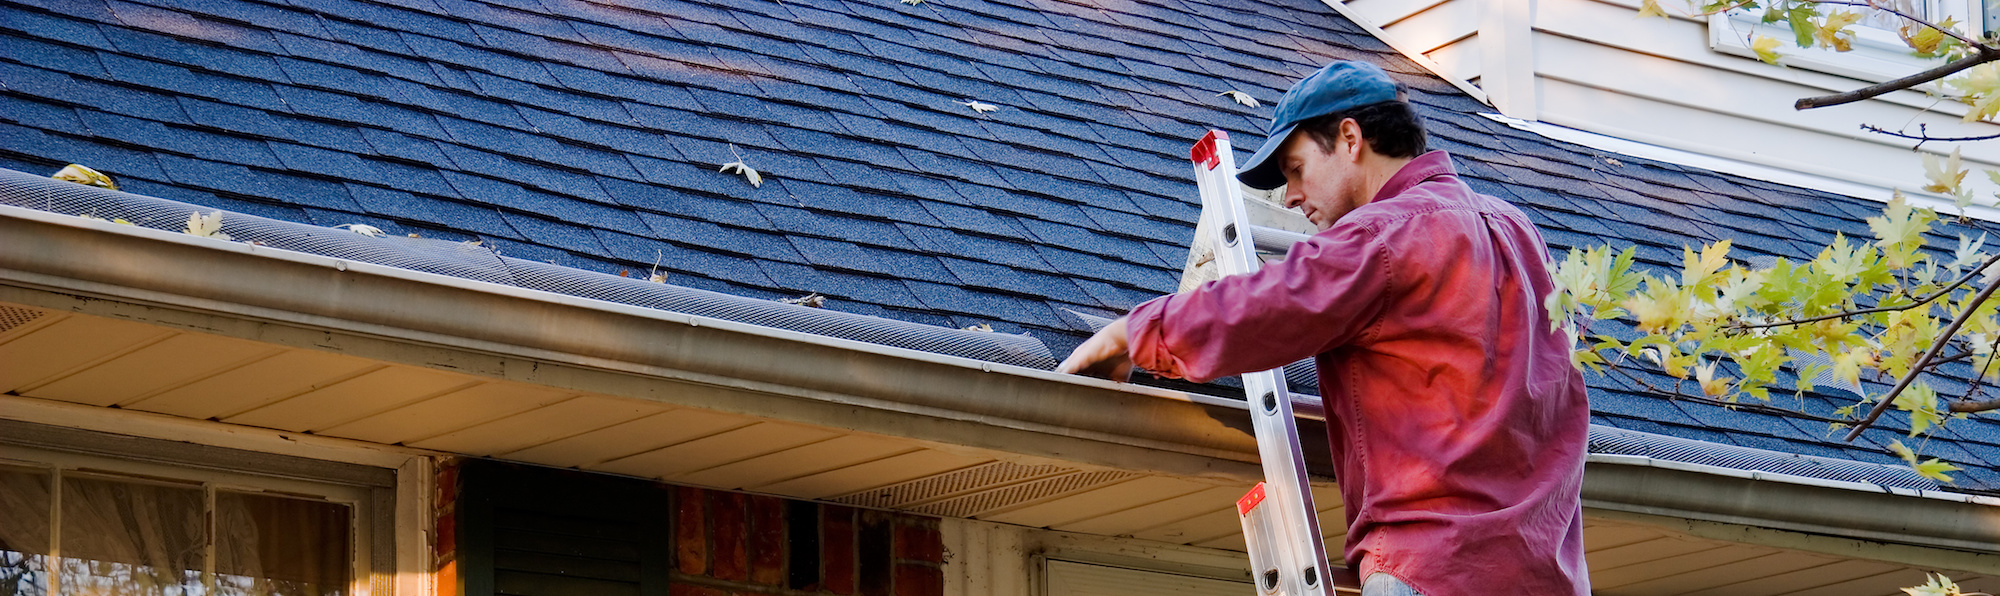 Roof Inspection Services - Eustis Roofing Company in Lake County, FL